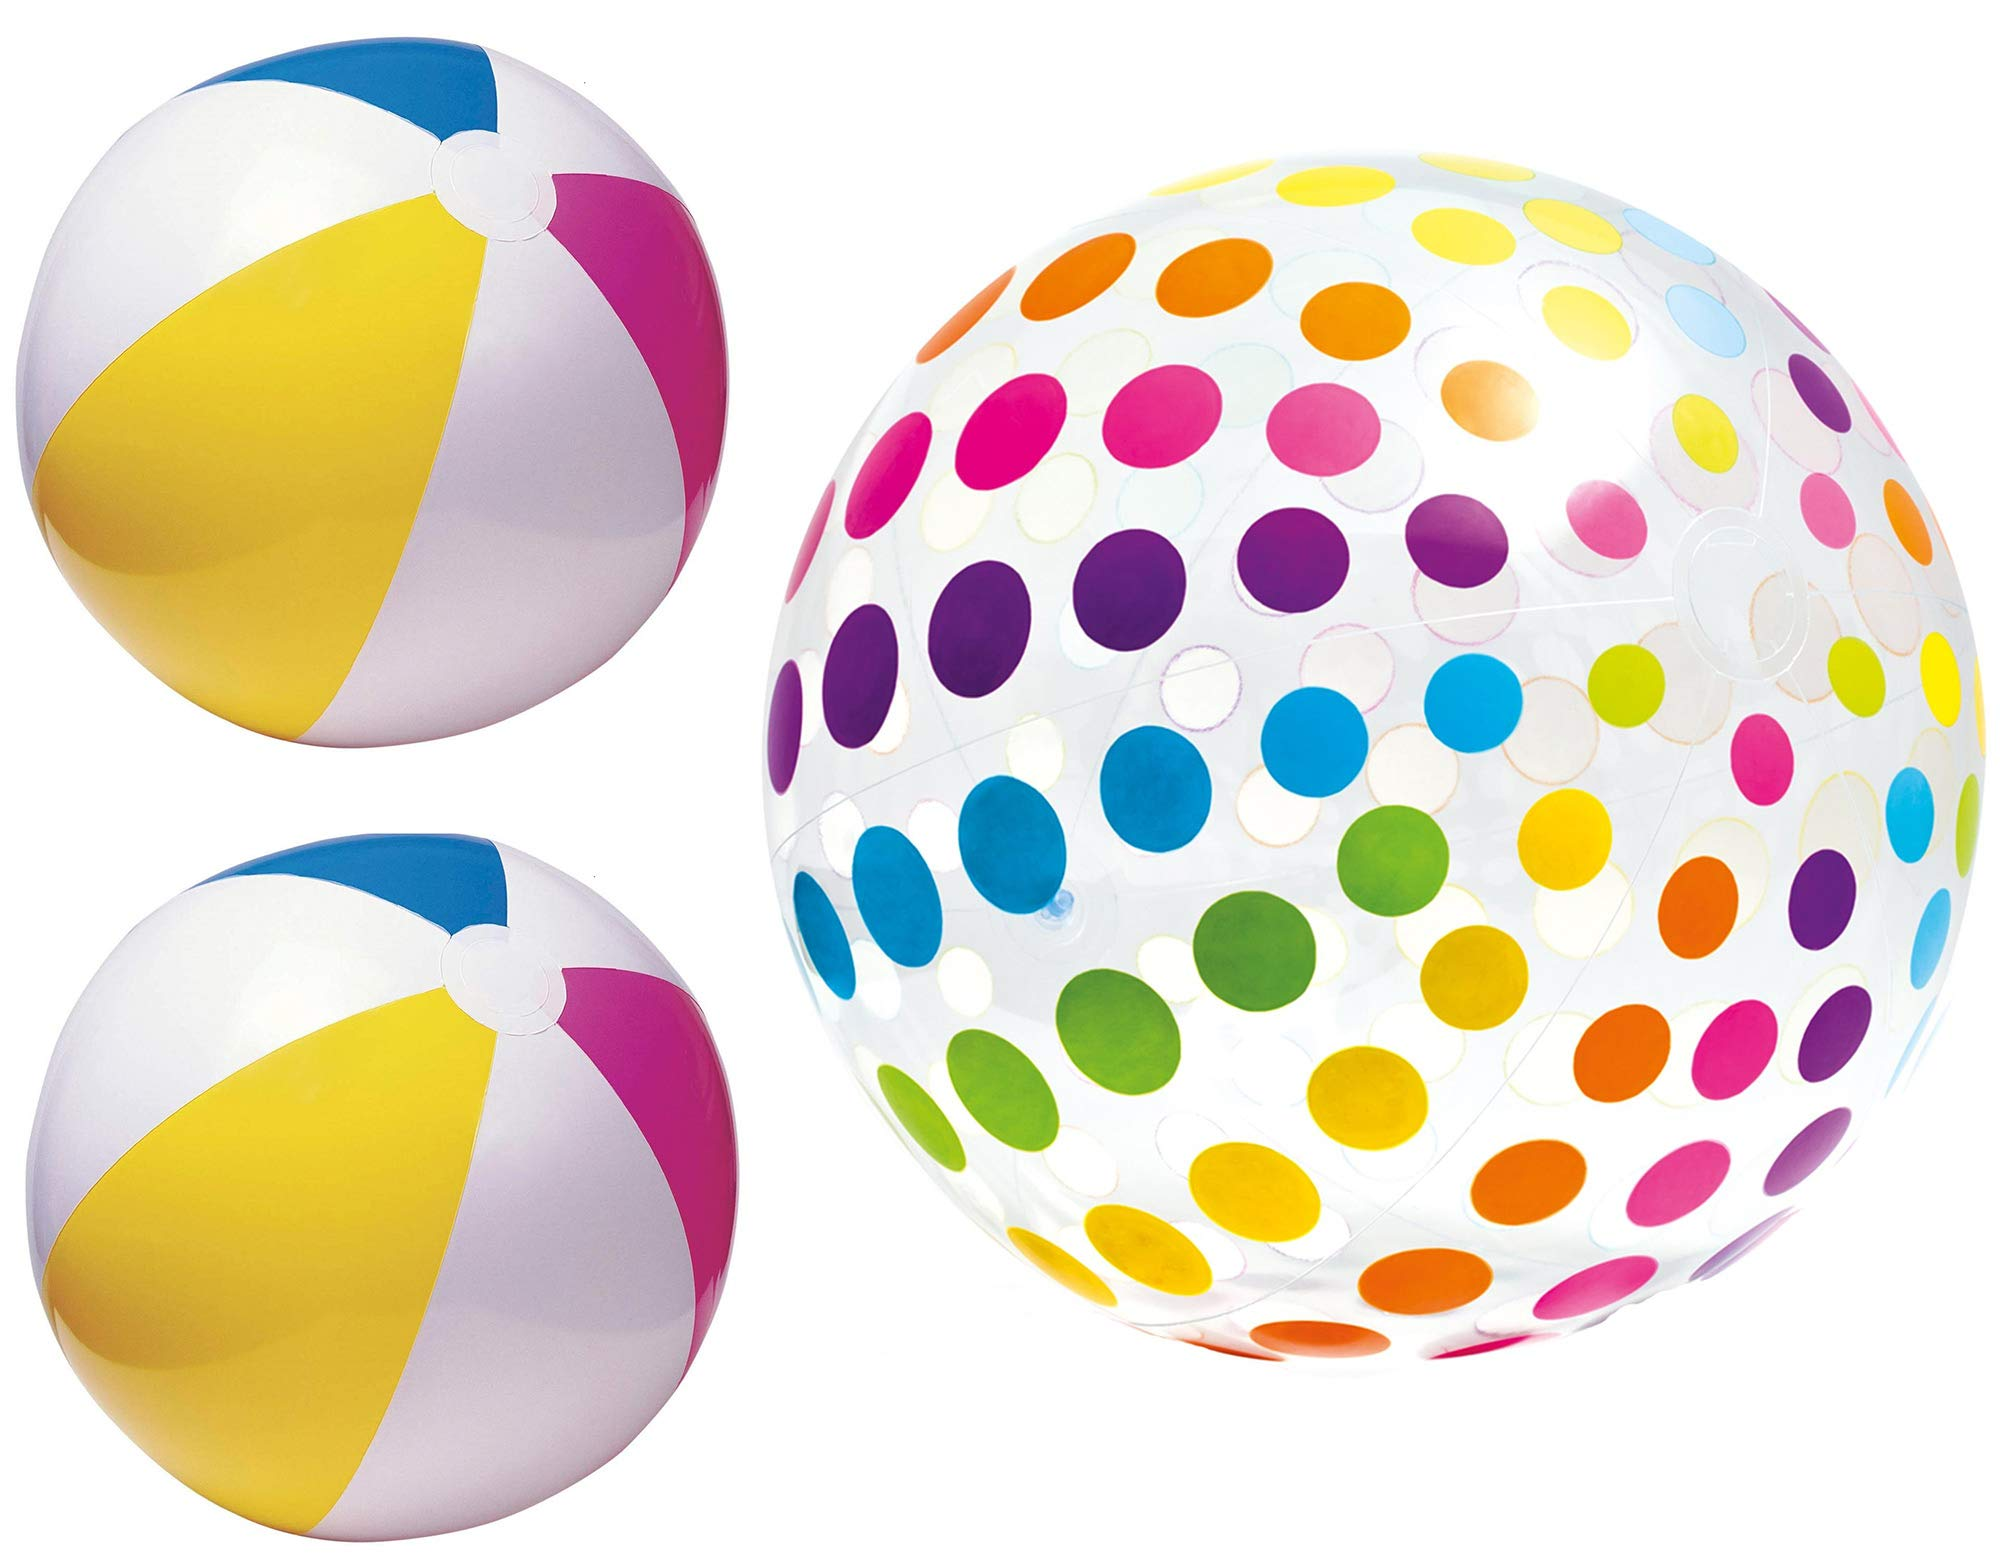 Intex Summer Beach Ball Set - One Jumbo 42'' Ball and Two Classic 24'' Balls for Beach and Pool by Intex